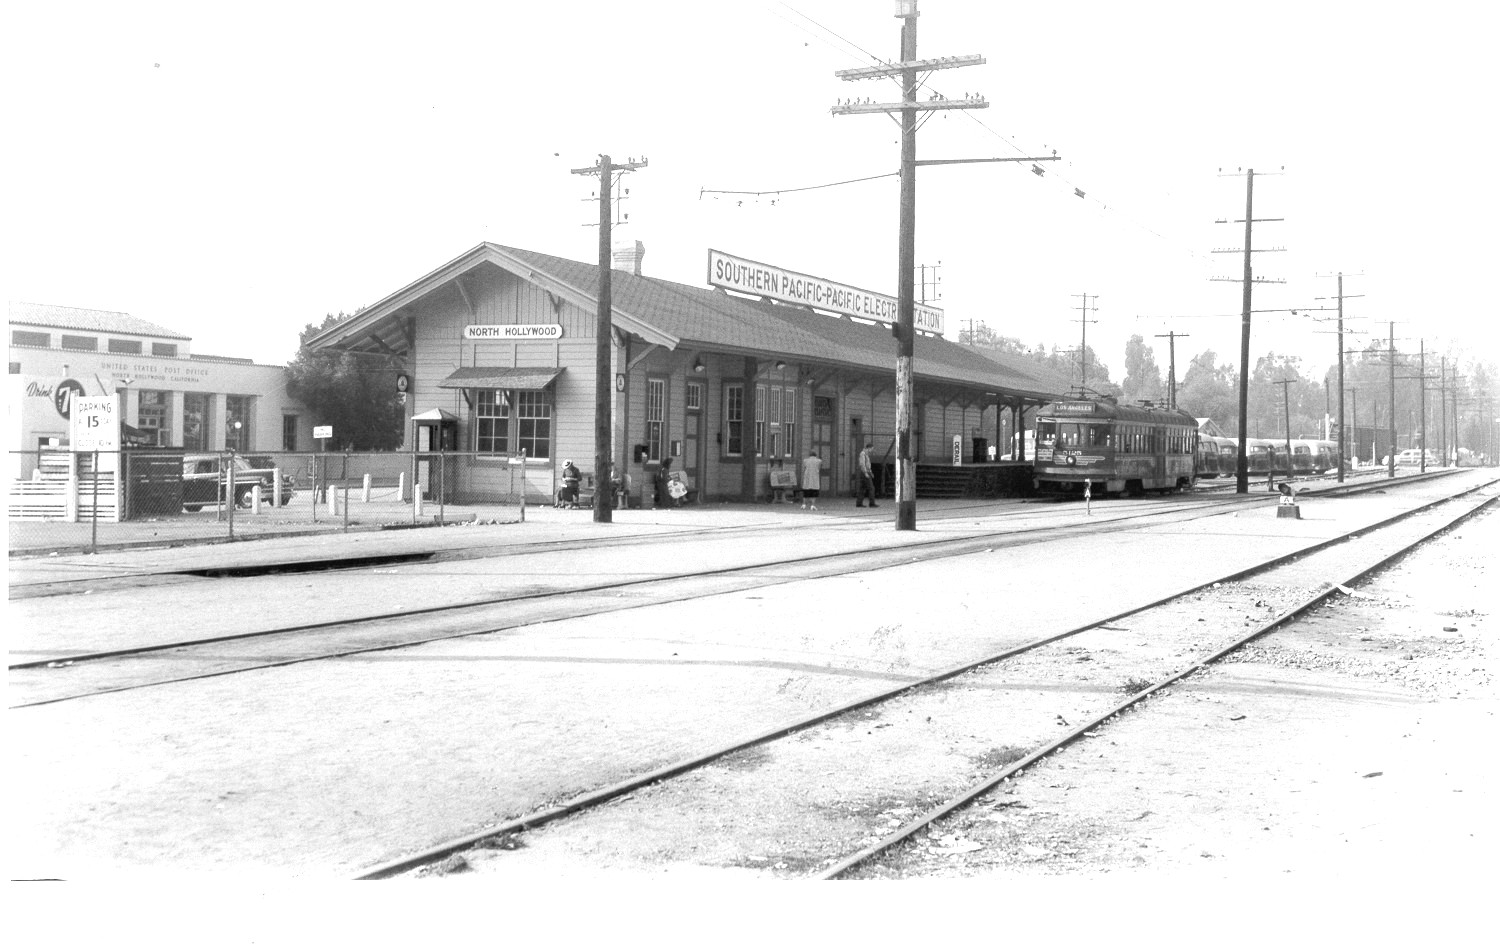 Pacific Electric North Hollywood Station 1950-